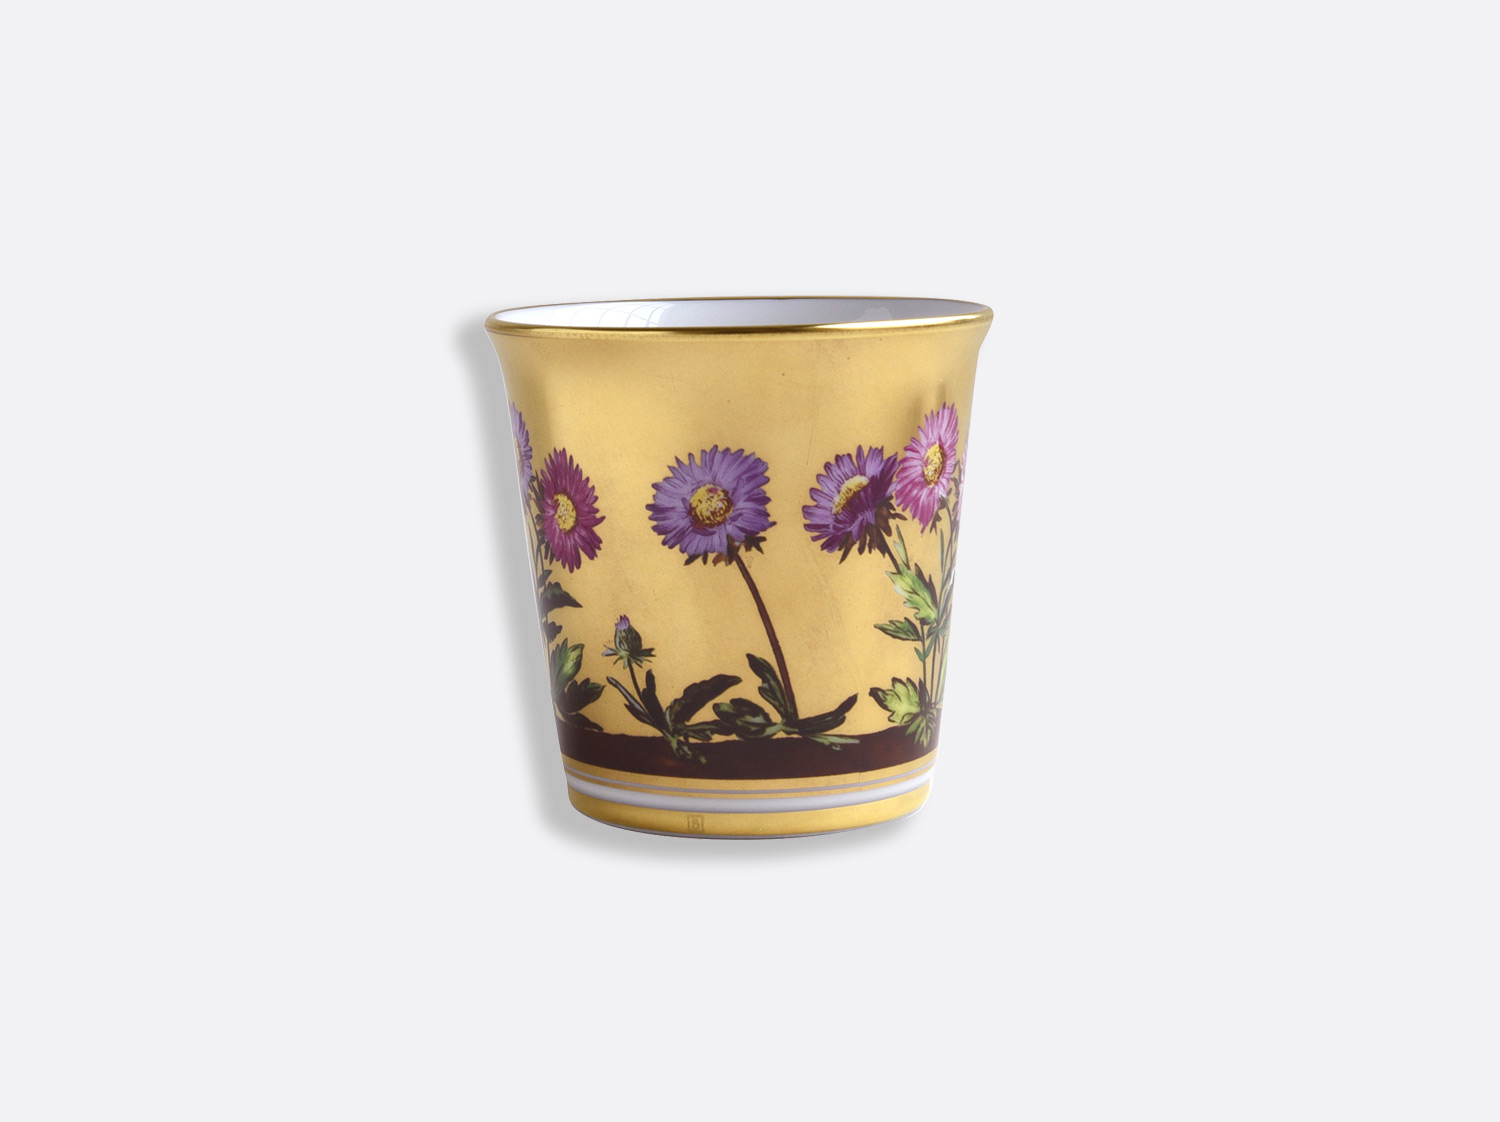 Pot 9 cm + bougie parfumée 200g en porcelaine de la collection Heloise Bernardaud